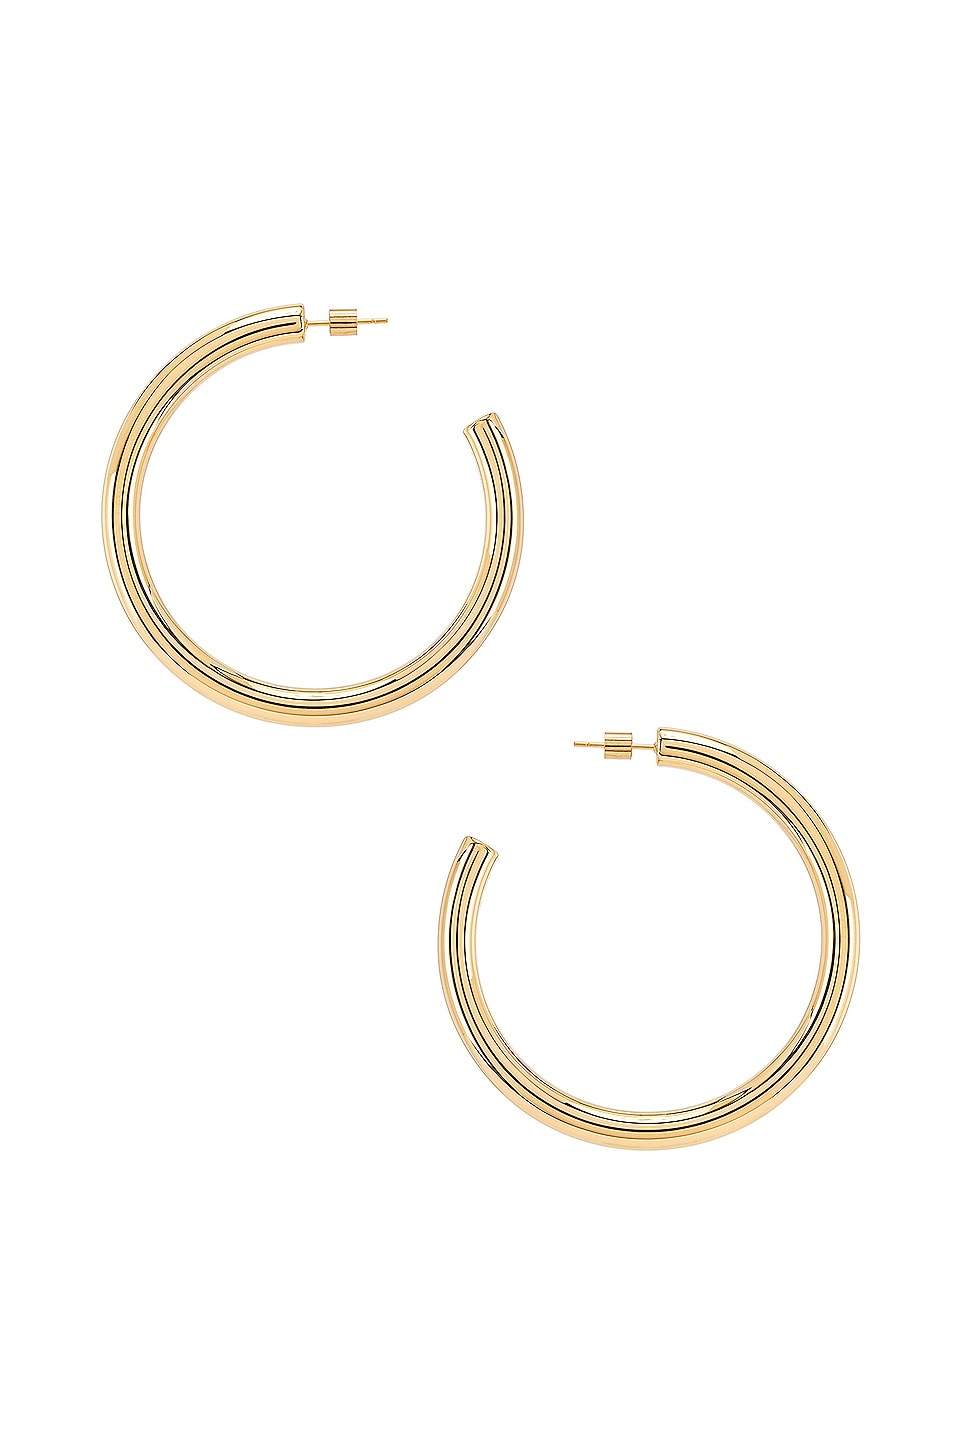 Wanderlust + Co Faye XL Hoop Earrings in Gold